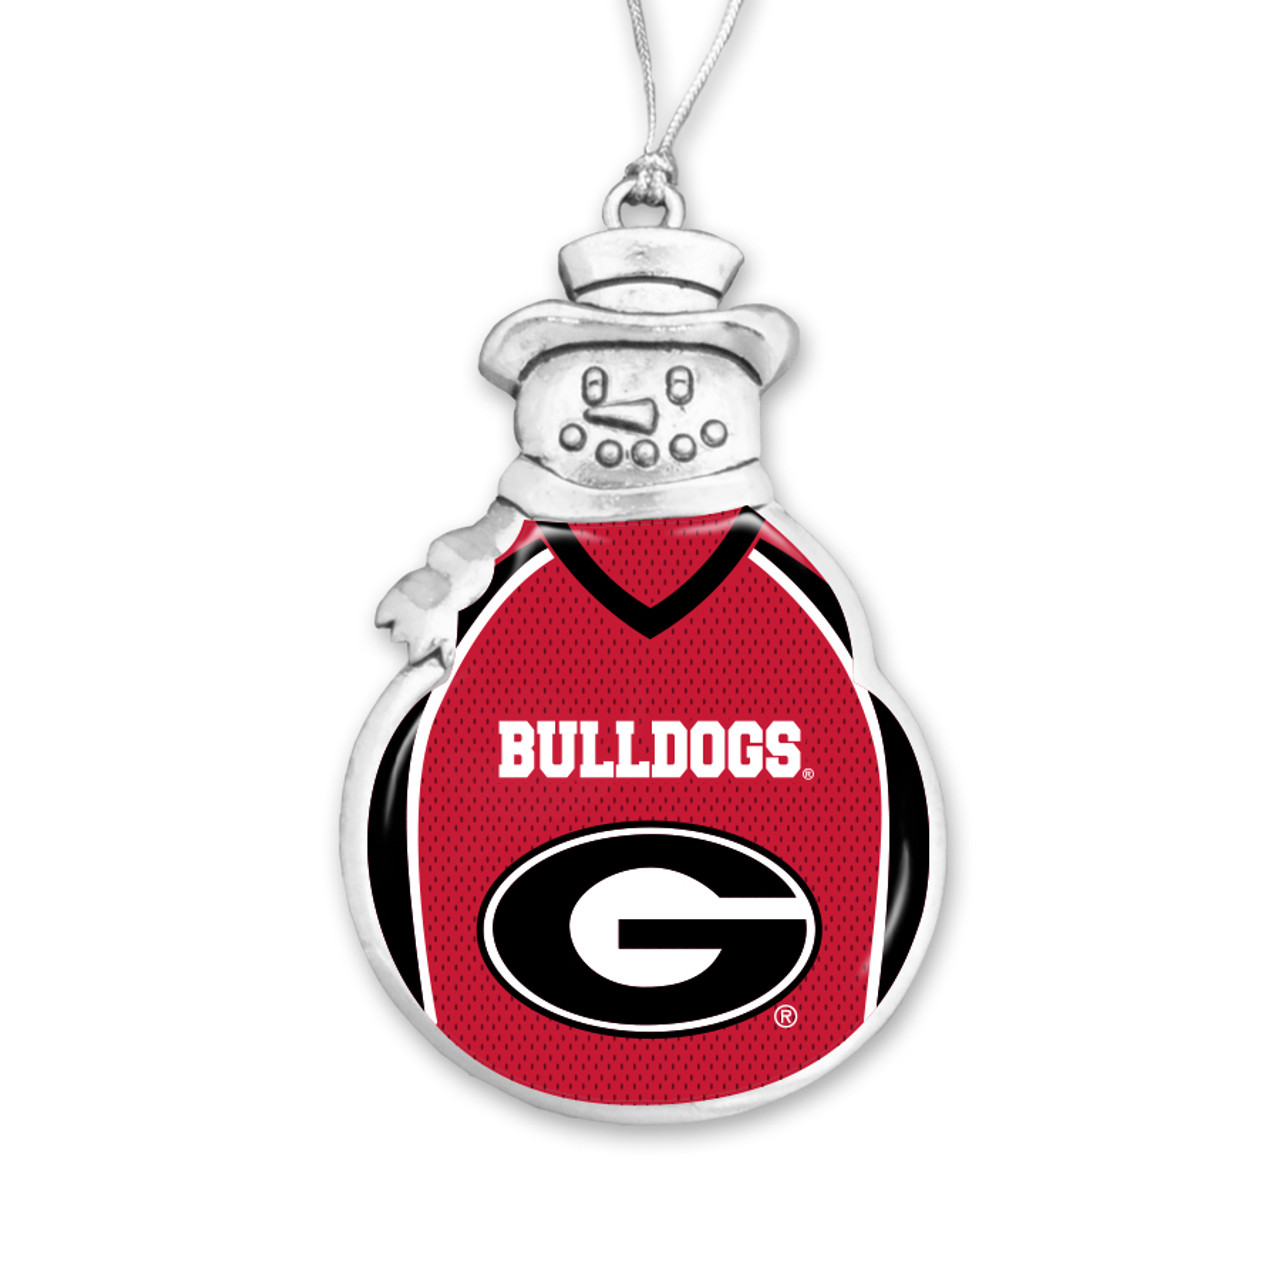 Georgia Bulldogs Snowman Ornament With Football Jersey